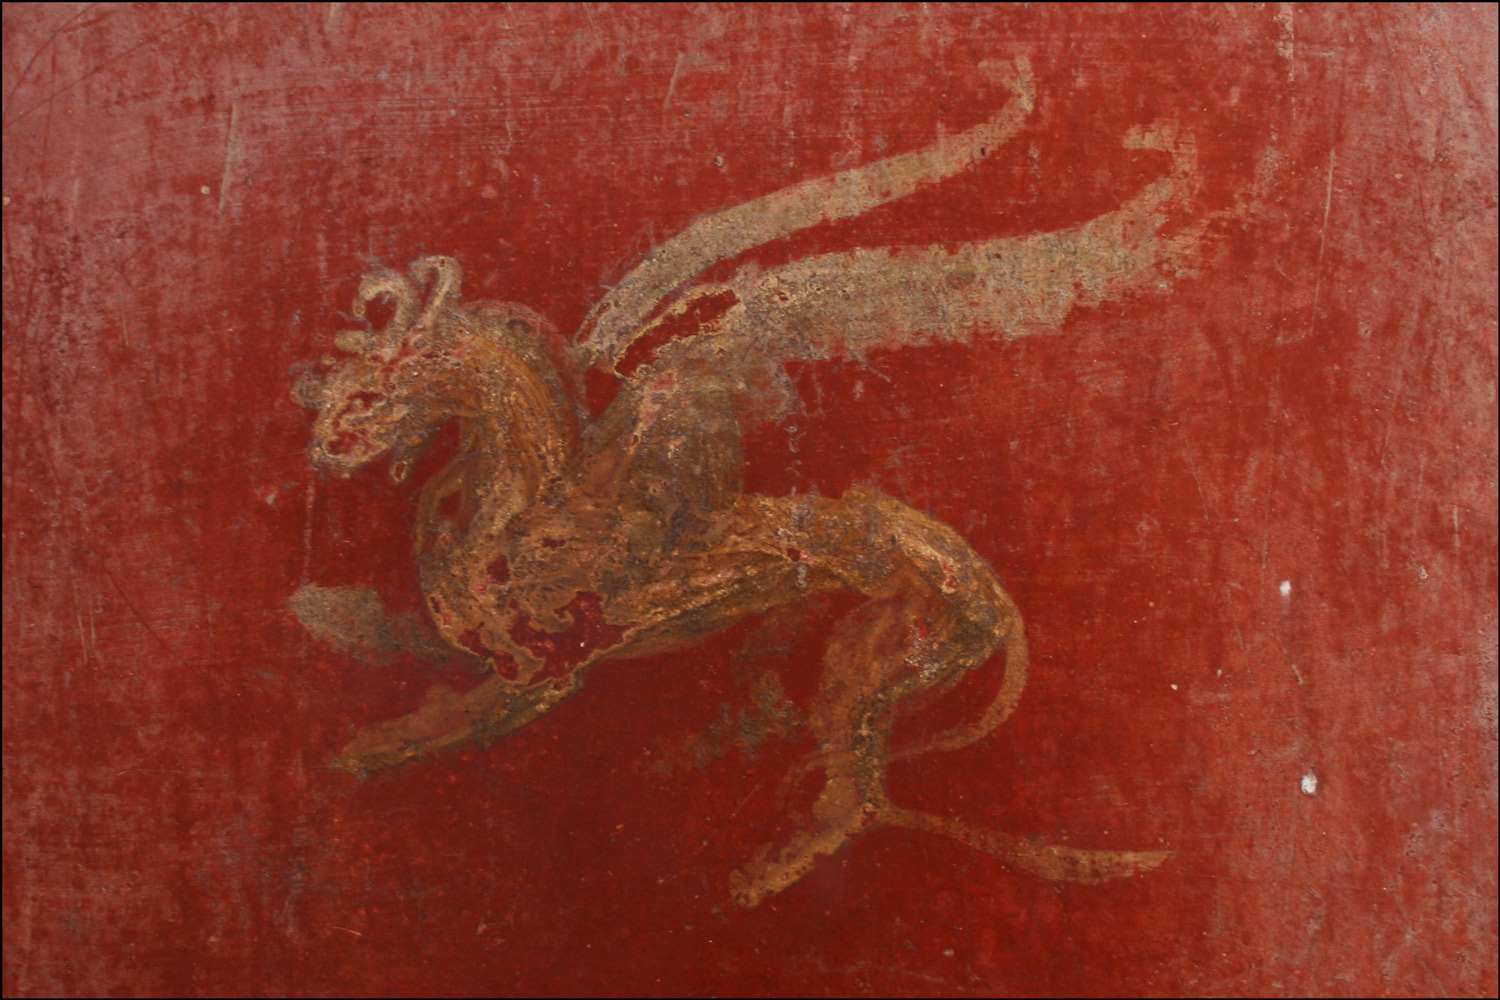 Pegasus in the Fullery of Stephanus